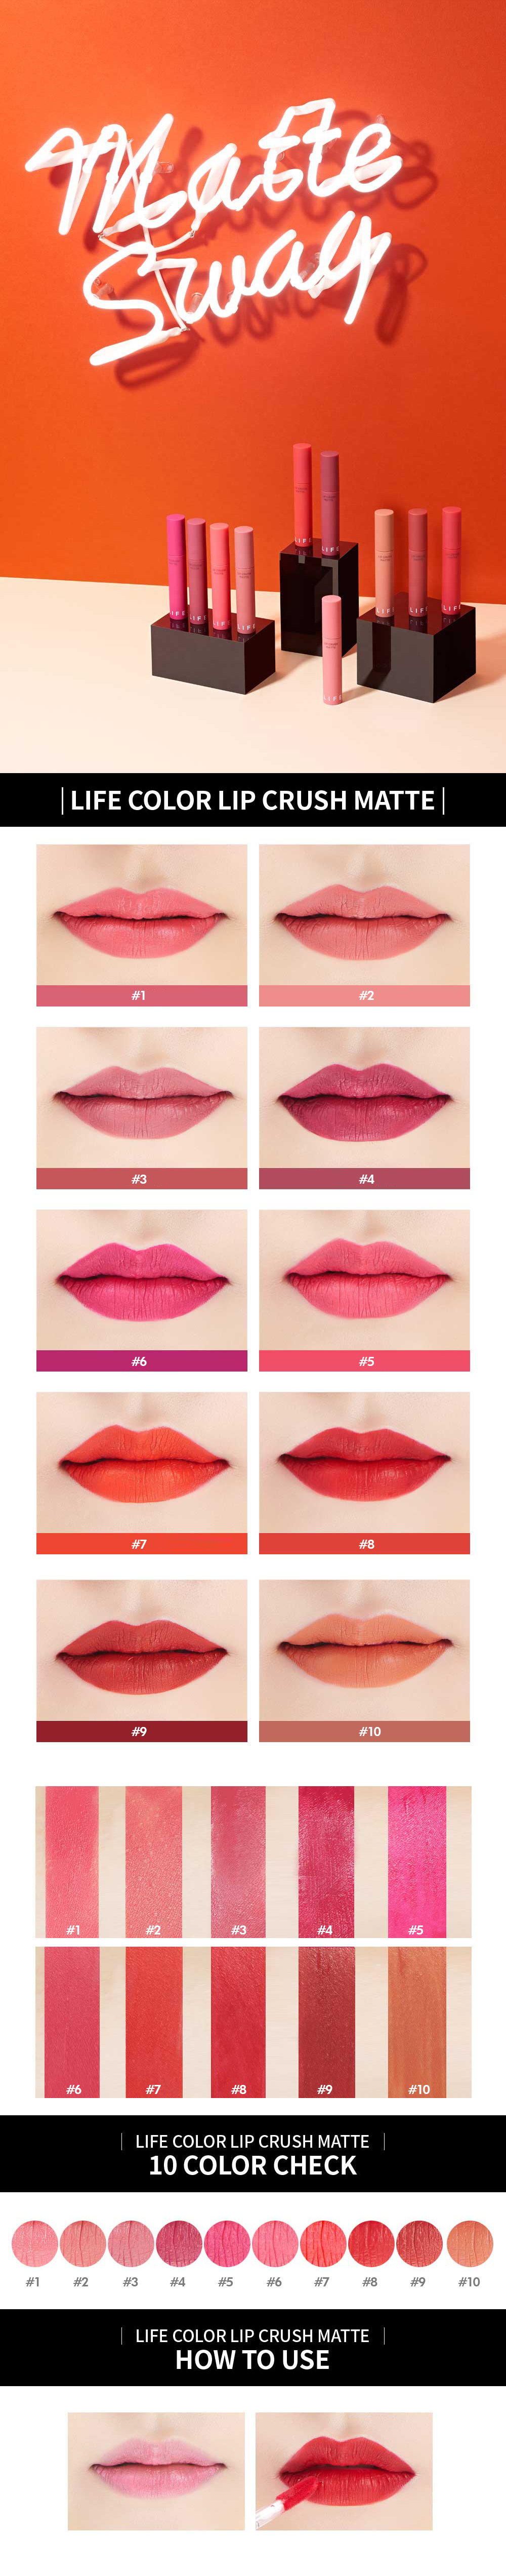 [It's Skin] Life Color Lip Crush Matte Power Adhesion Pigment Long Lasting